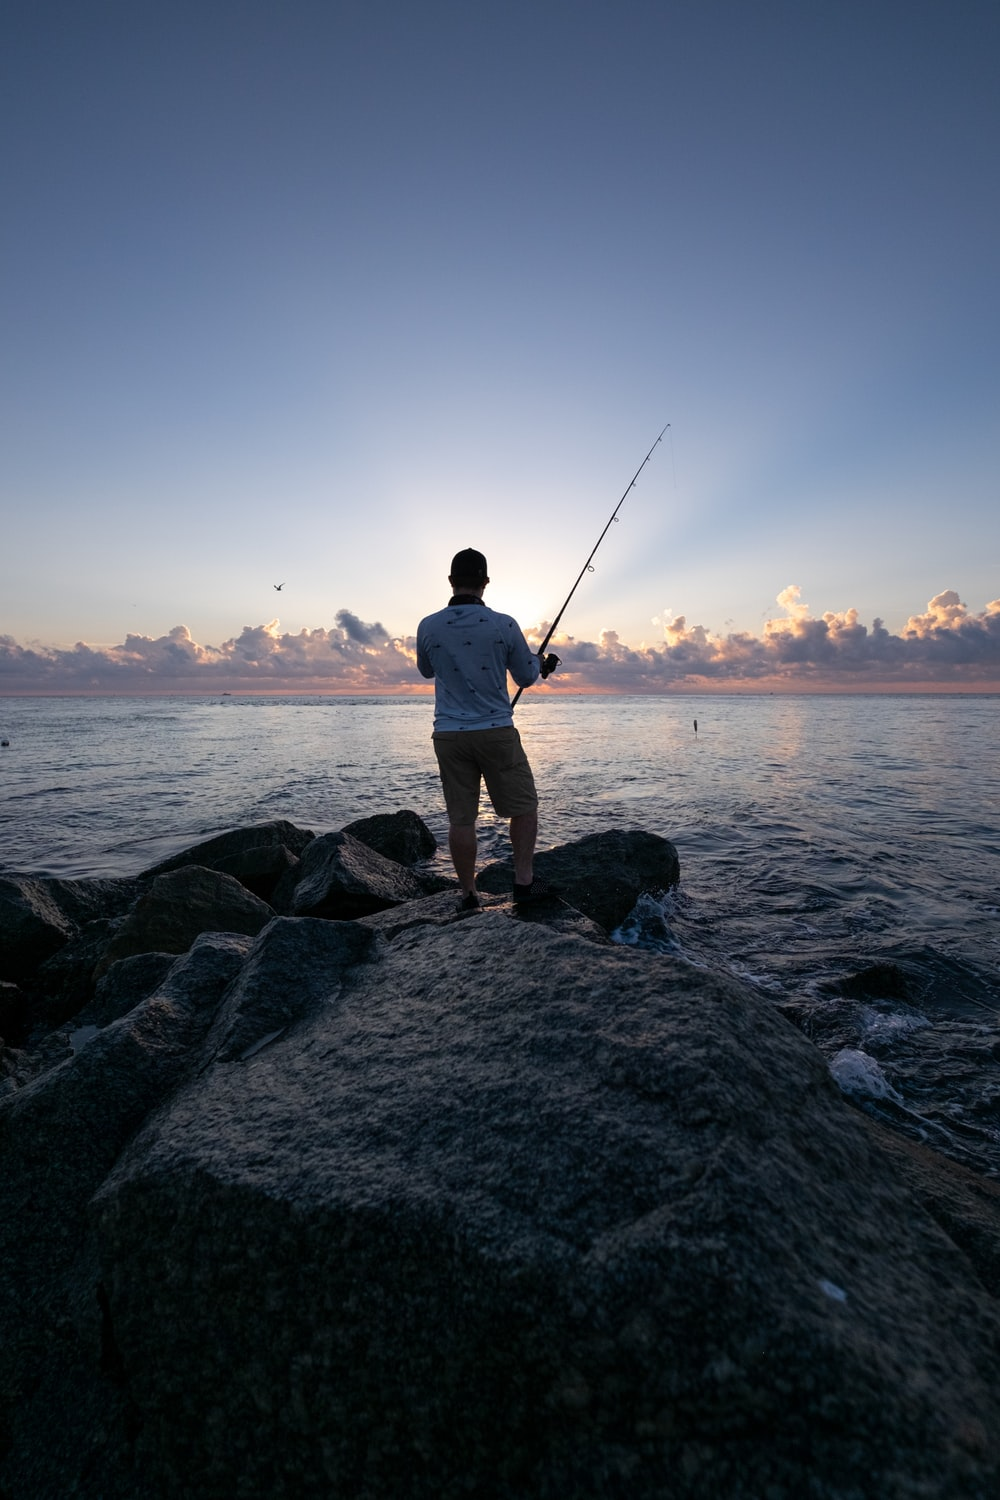 man in white shirt and brown shorts fishing on sea during daytime